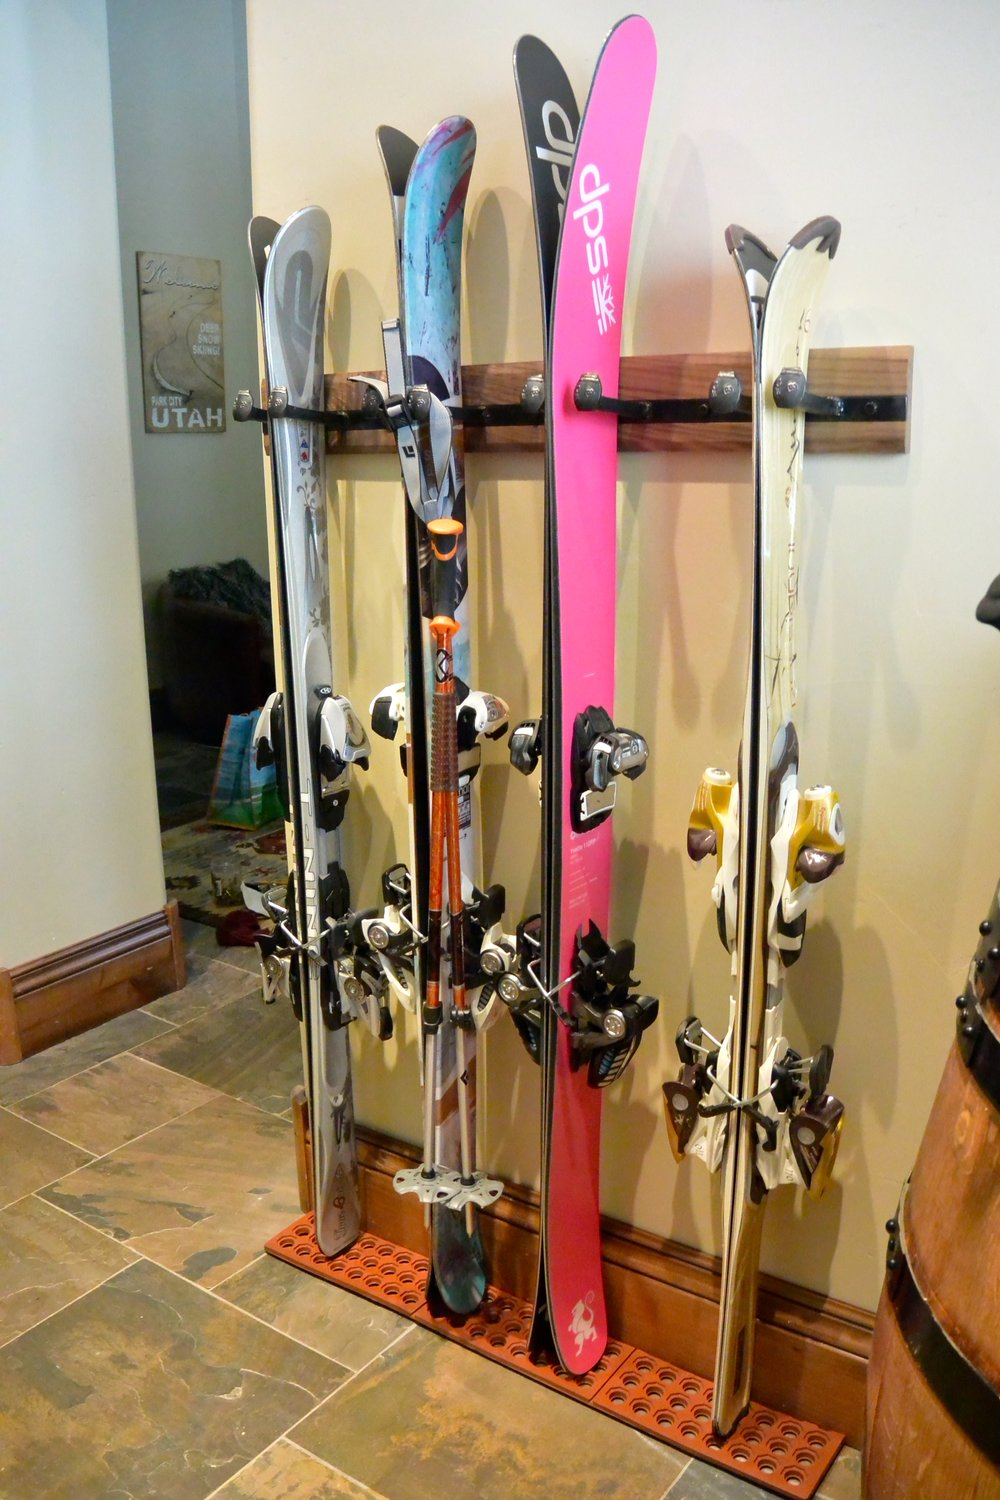 Your skis look great!